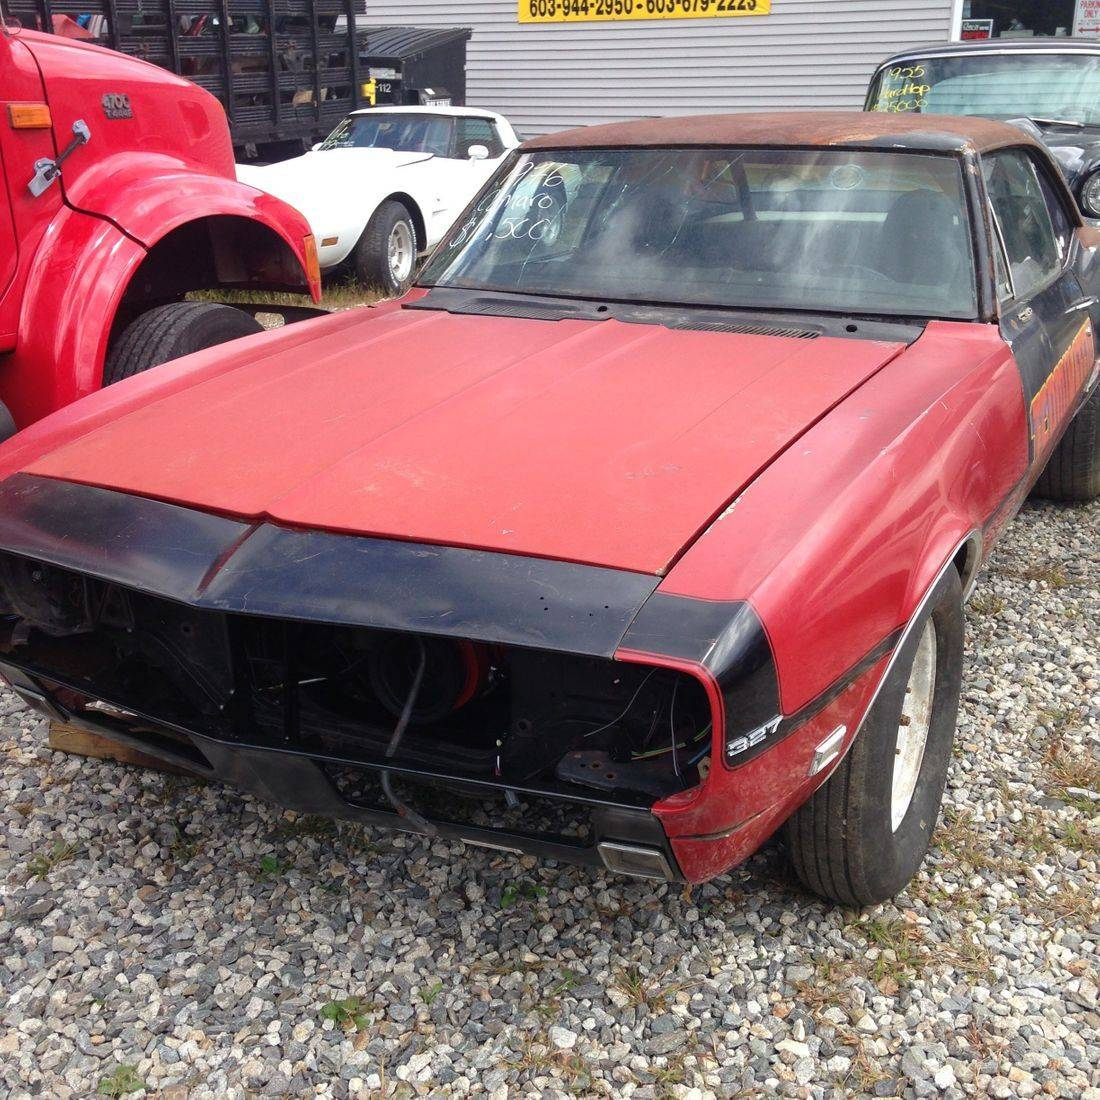 1967 Camaro, camaro, corvette, old corvette, car show, longhorn, 55 chevy,  performance dodge, harley parts, cheap cars, suv, used cars near me, mechanic near me,  oil change near me, auto repair near me,  car inspection near me, car inspection, mechanics, mechanics near me,  inspection sticker, NH sticker, NH inspection sticker, New hampshire inspection sticker, vehicle inspection near me, auto inspection,  bmw, honda motorcycles, cycle trader, yamaha motorcycles, mustang, ford mustang, bmw motorcycles, motorcycle sticker, indian motorcycles, roadside assistance, towing near me, tow truck near me, tow company near me, tow company, towing service, towig service near me, engine repair, transmission, transmission repair, radiator repair, air conditioner repair, exhaust repair, a/c repair, front end repair, exhaust repair near me, radiator repair near me, ac repair, car ac,  buy tires, tire repair, tire repair near me, tires and wheels, wheels and tires for sale, jeep, jeeps for sale, jeeps for sale near me, used jeeps for sale, used jeeps for sale near me, jeep repair, jeep repair near me, jeep wrangler for sale, jeep cherokee, jeep yj, jeeps yj for sale, jeep wrangler, used jeep wrangler for sale, lifted jeep, lifted jeeps, lifted jeeps fpr sale, jeep cj, jeep tj, ford for sale, chevy for sale, dodge for sale, chevelle for sale, chevelle, masters delux, masters deluxe, bel air, covertable for sale, impala for sale, ford galaxy 500, ford galaxy,  ford galaxie, ford galaxie 500, 1955 chevy, burnout, burnouts, burn out, 1972 vette 454, 454, chevy big block, big block chevys, chevy big blocks, camaro rs-ss, camaro rsss, drag cars, dragcar, drag car, classic car show, jump start, locked out,  Sales and service shop Brentwood NH, Sales and service shop, sales and service, car trouble, repair shop, automotive, car sales, trucks for sale, truck sales, cars for sale, motorcycle repair, motorcycle sales, motorcycles for sale, 4x4 for sale, plows for sale, campers for sale,  Brentwood NH, New Hampshire, cars dealerships Brentwood NH, car dealership Brentwood NH, cars Brentwood New Hampshire, trucks Brentwood NH, Antique cars New Hampshire, classic cars New Hampshire, dealerships near me, used car lot, used car lots, used car dealers, used car dealer, used cars near me,  Cars NH, oil change, 03833, used car, used cars, car, cars, sale, auto, autos, vehicle, dealer, classic cars NH, antiques NH, Inspection station NH, Inspection Brentwood NH, automotive shop Brentwood NH,  autos for sale NH, oil change NH, car tune up NH, family owned dealership, family owned car lot, family owned service shop, service shop, shop, state inspection, NH state inspection, Inspection station, state inspection NH, motion performance, motion performance NH, motion performance LLC,  mechanic, brakes, mechanics, transmissions, auto shop Brentwood, auto shop, transmission problem, brake repair, vehicle, auto, used car, preowned, pre owned, preowned car, used plow, used truck, used motorcycle, old cars, old trucks, automobile, dealer, dealer ship, Motion LLC, Motion, Performance, MP LLC, motionperformance, motionperformancellc, should I buy a used car?, buy a used car, buy a used motorcycle? Exeter used cars, Brentwood used cars, NH used cars, NH dealers, NH, affordable car, buy here pay here, payment on car, chevy car, chevy truck, Harley Davidson, Ford, Buick, Chrysler, used chevy, used 4x4, cheap car, cheap truck, cheap motorcycle, tow, tow truck, towing, 24 hour towing, car inspection, where car I get my car inspected?, where can I get my truck inspected?, where can I my motorcycle inspected?, where can I get my motorcycle inspected, where can I get my car inspected, NH inspections, commercial vehicle, CDL, New car inspection, engine, rebuild, custom, car restoration, antique restoration, truck restoration,